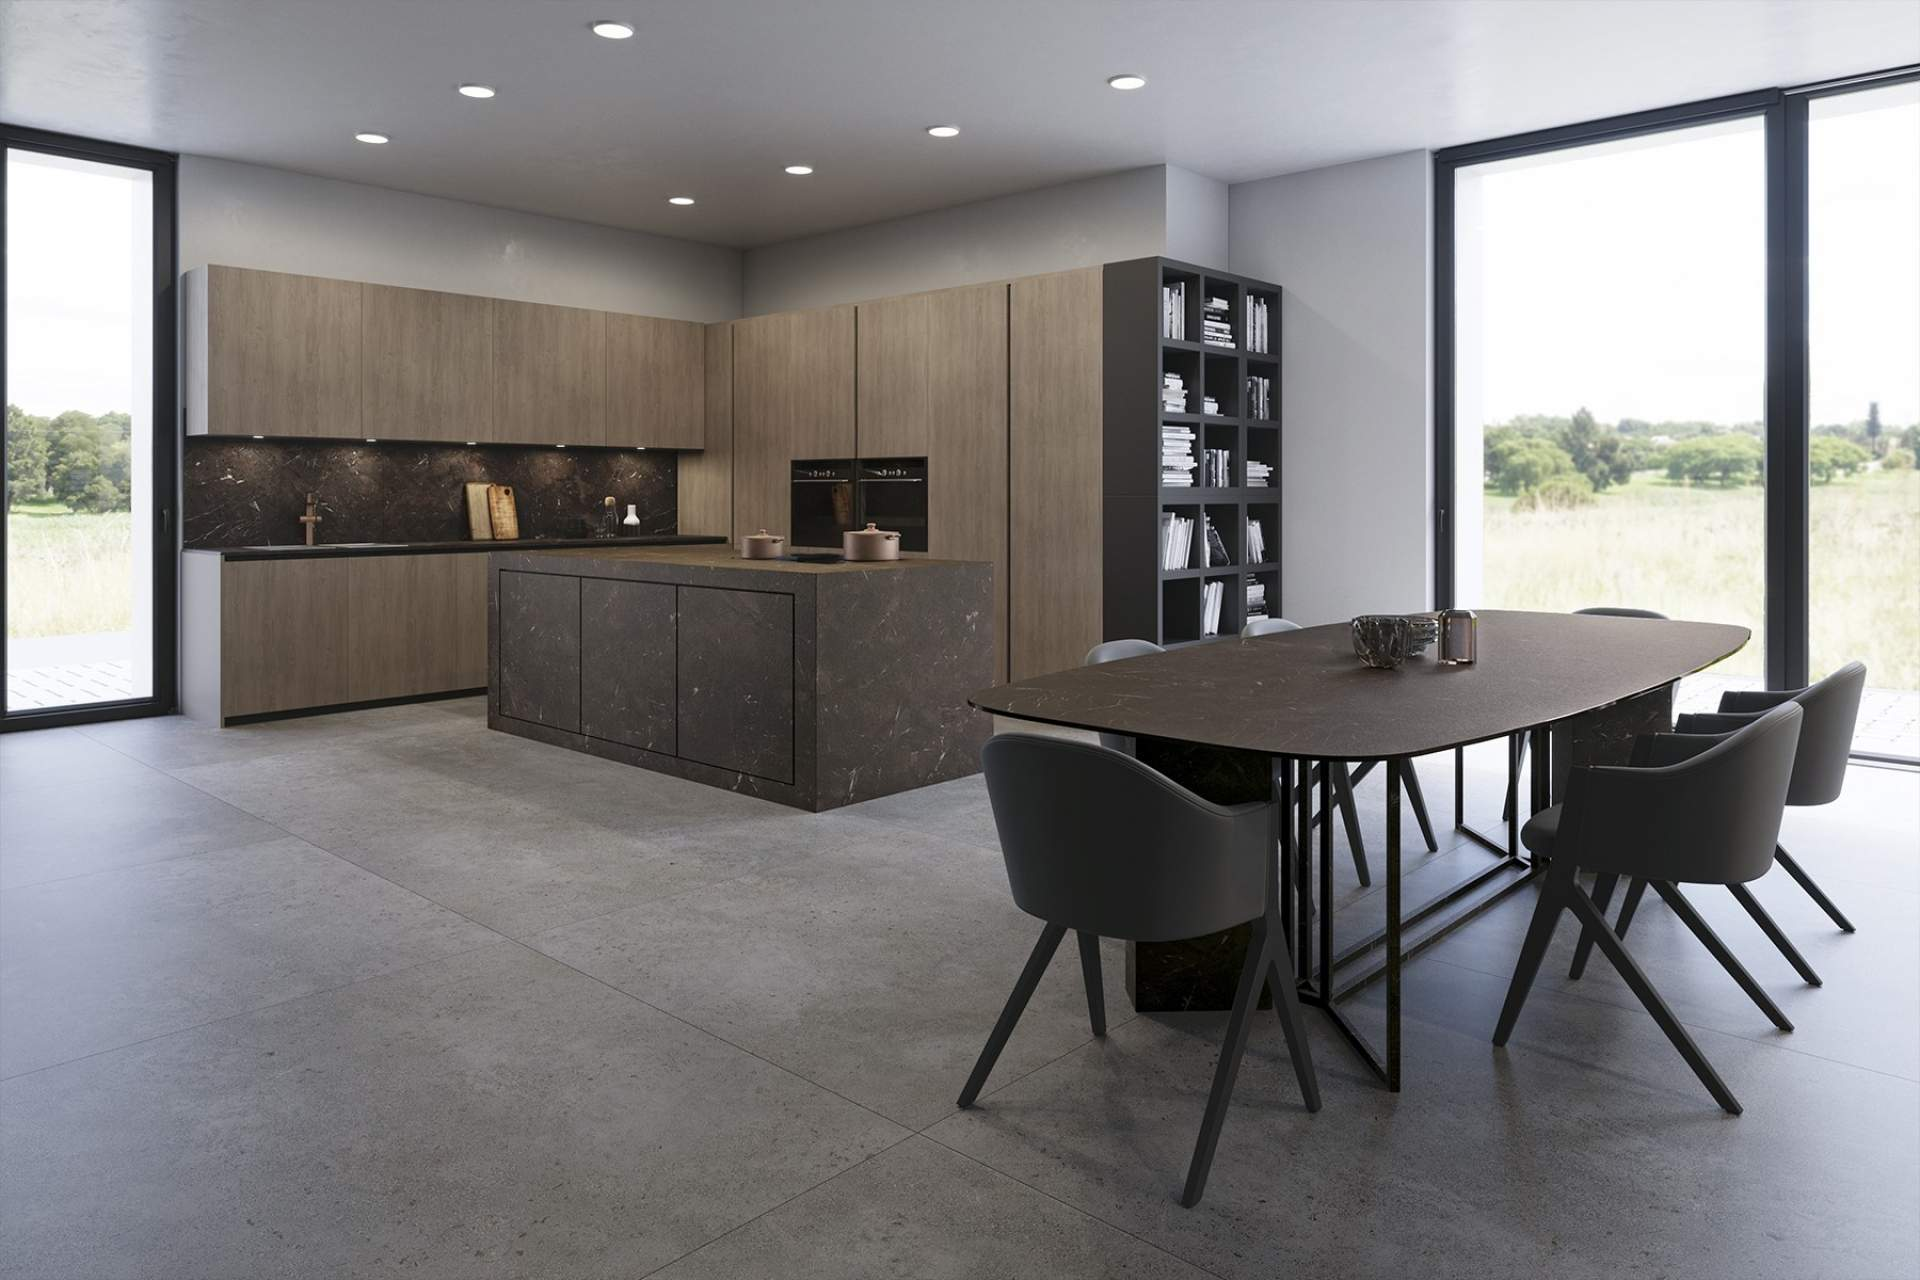 Industry kitchen setting using Grey Tile